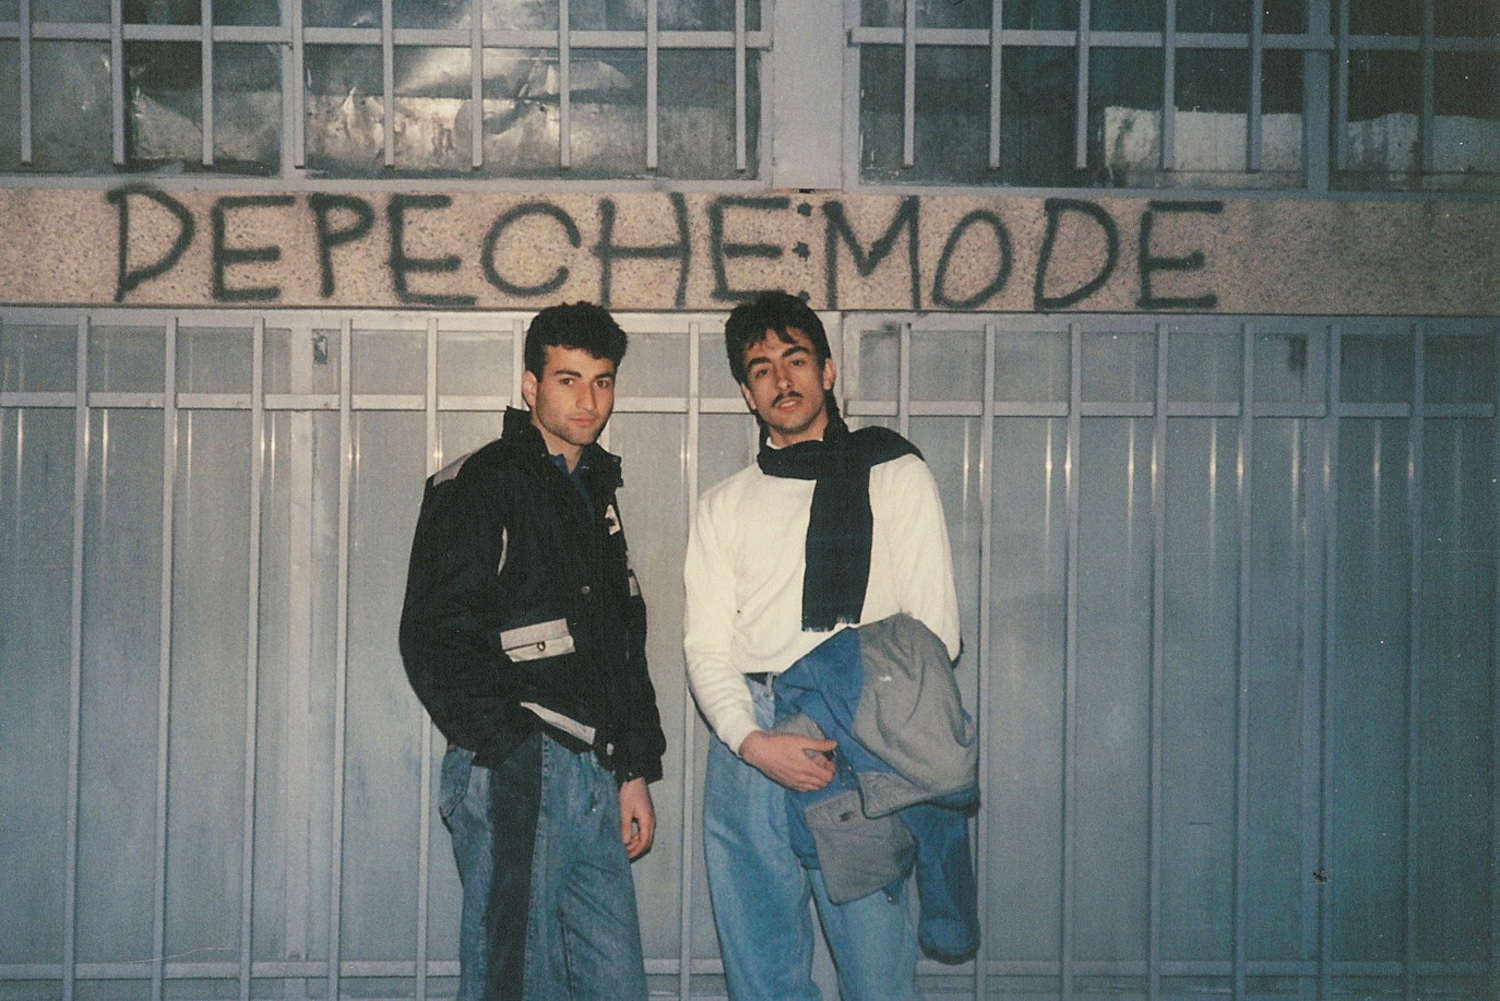 Our Hobby is Depeche Mode, 2006 (production still showing Depeche Mode fans in Tehran, Iran)